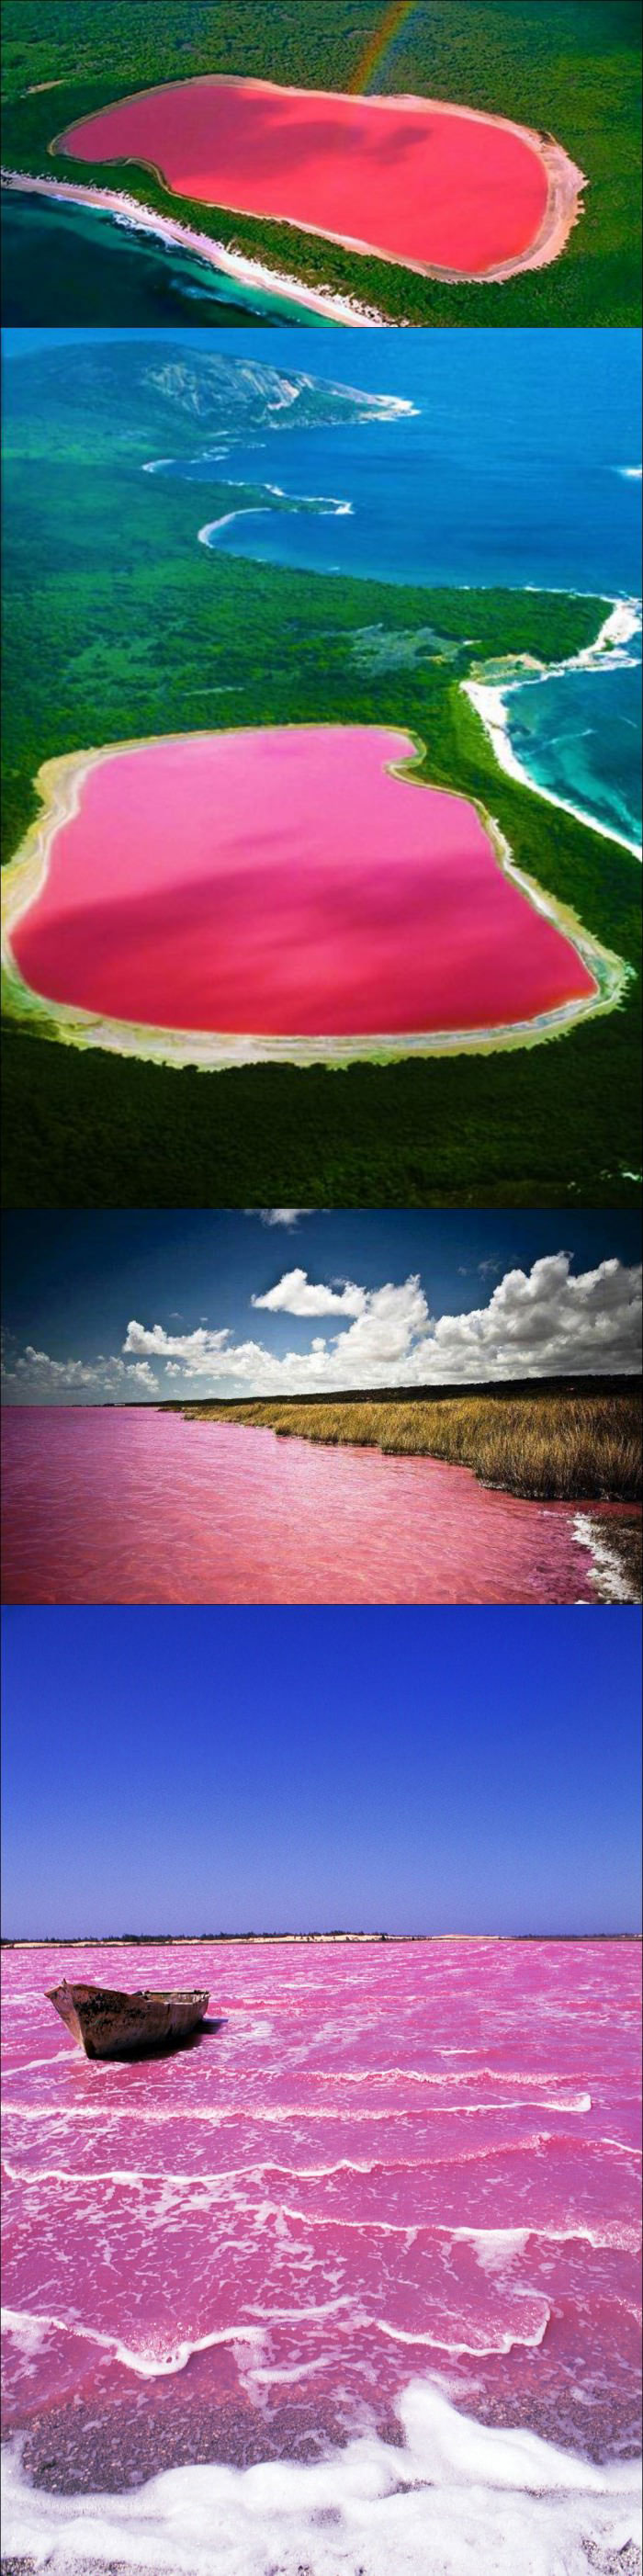 lake hillier, australia, the only living organism in it dunaliella salina causes the salt content in the lake to create a red dye